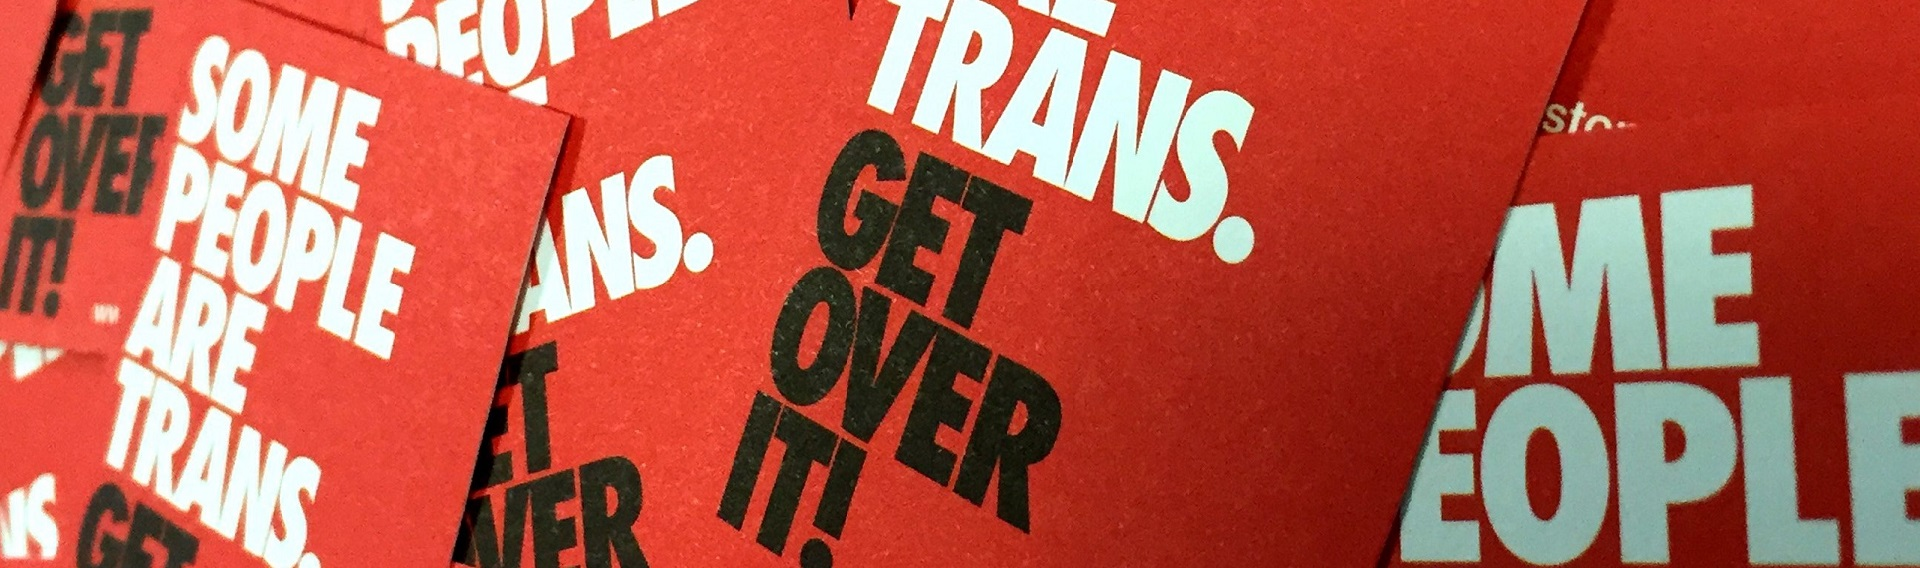 Some People Are Trans. Get Over It! posters